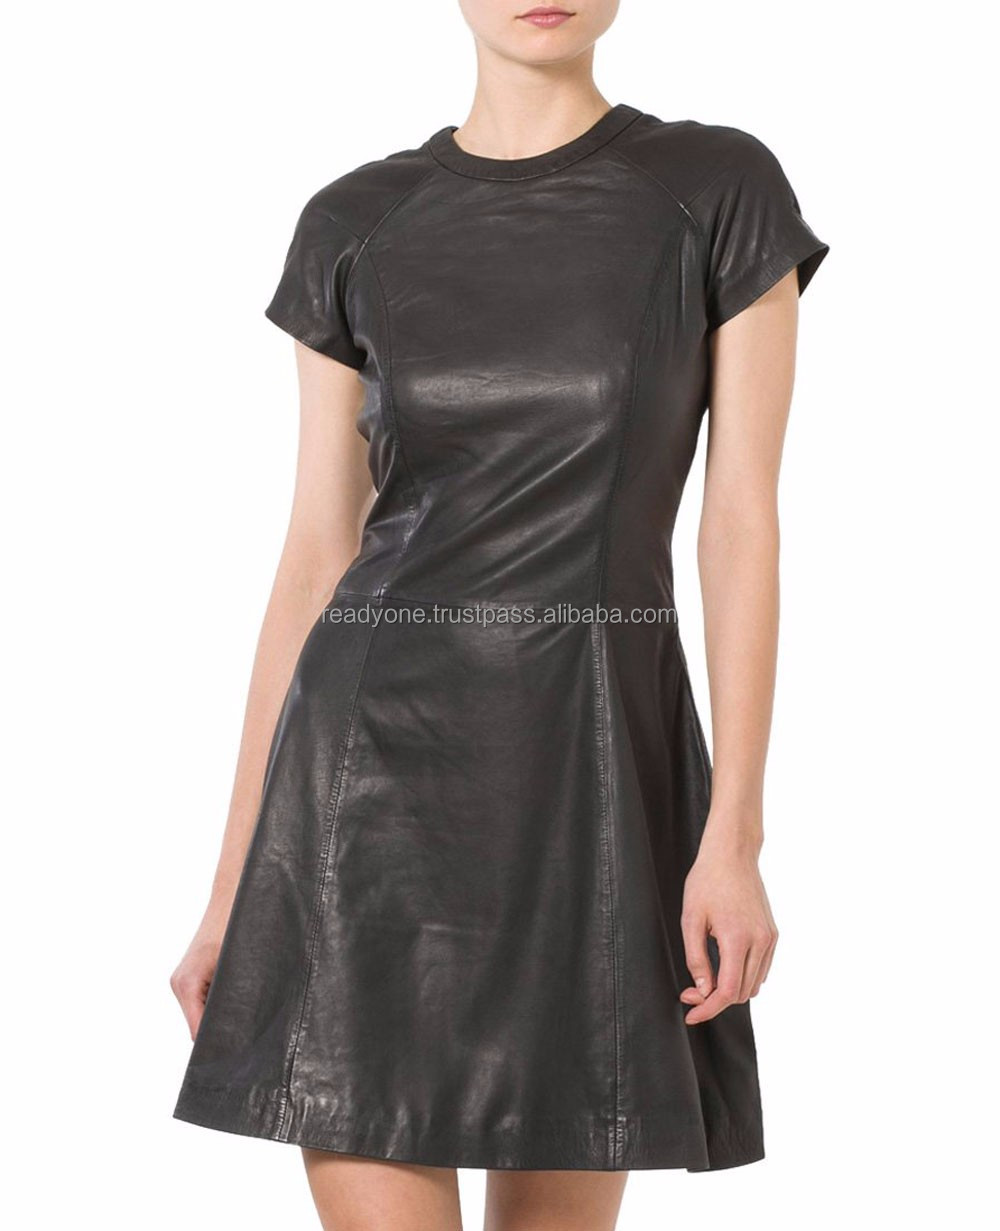 New arrivals turn down collar winter tight leather dress for ladies